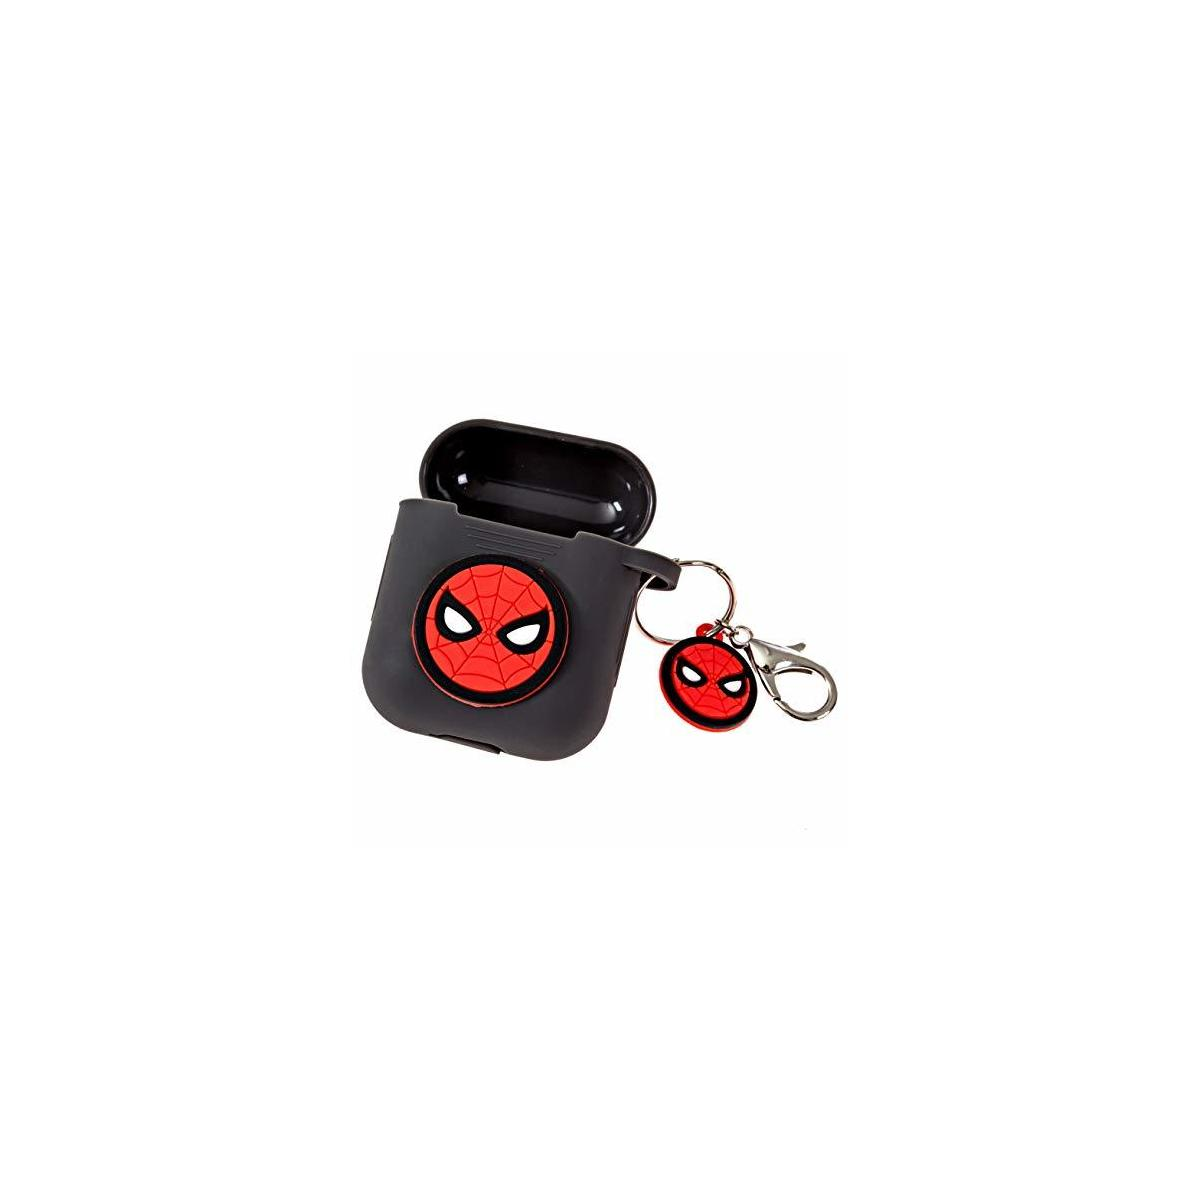 REBATE ONLY FOR : Color: Spiderman  -  Marvel AirPods Case Cover for Apple Airpods Compatible with Apple AirPods 1 & 2 Charging Case